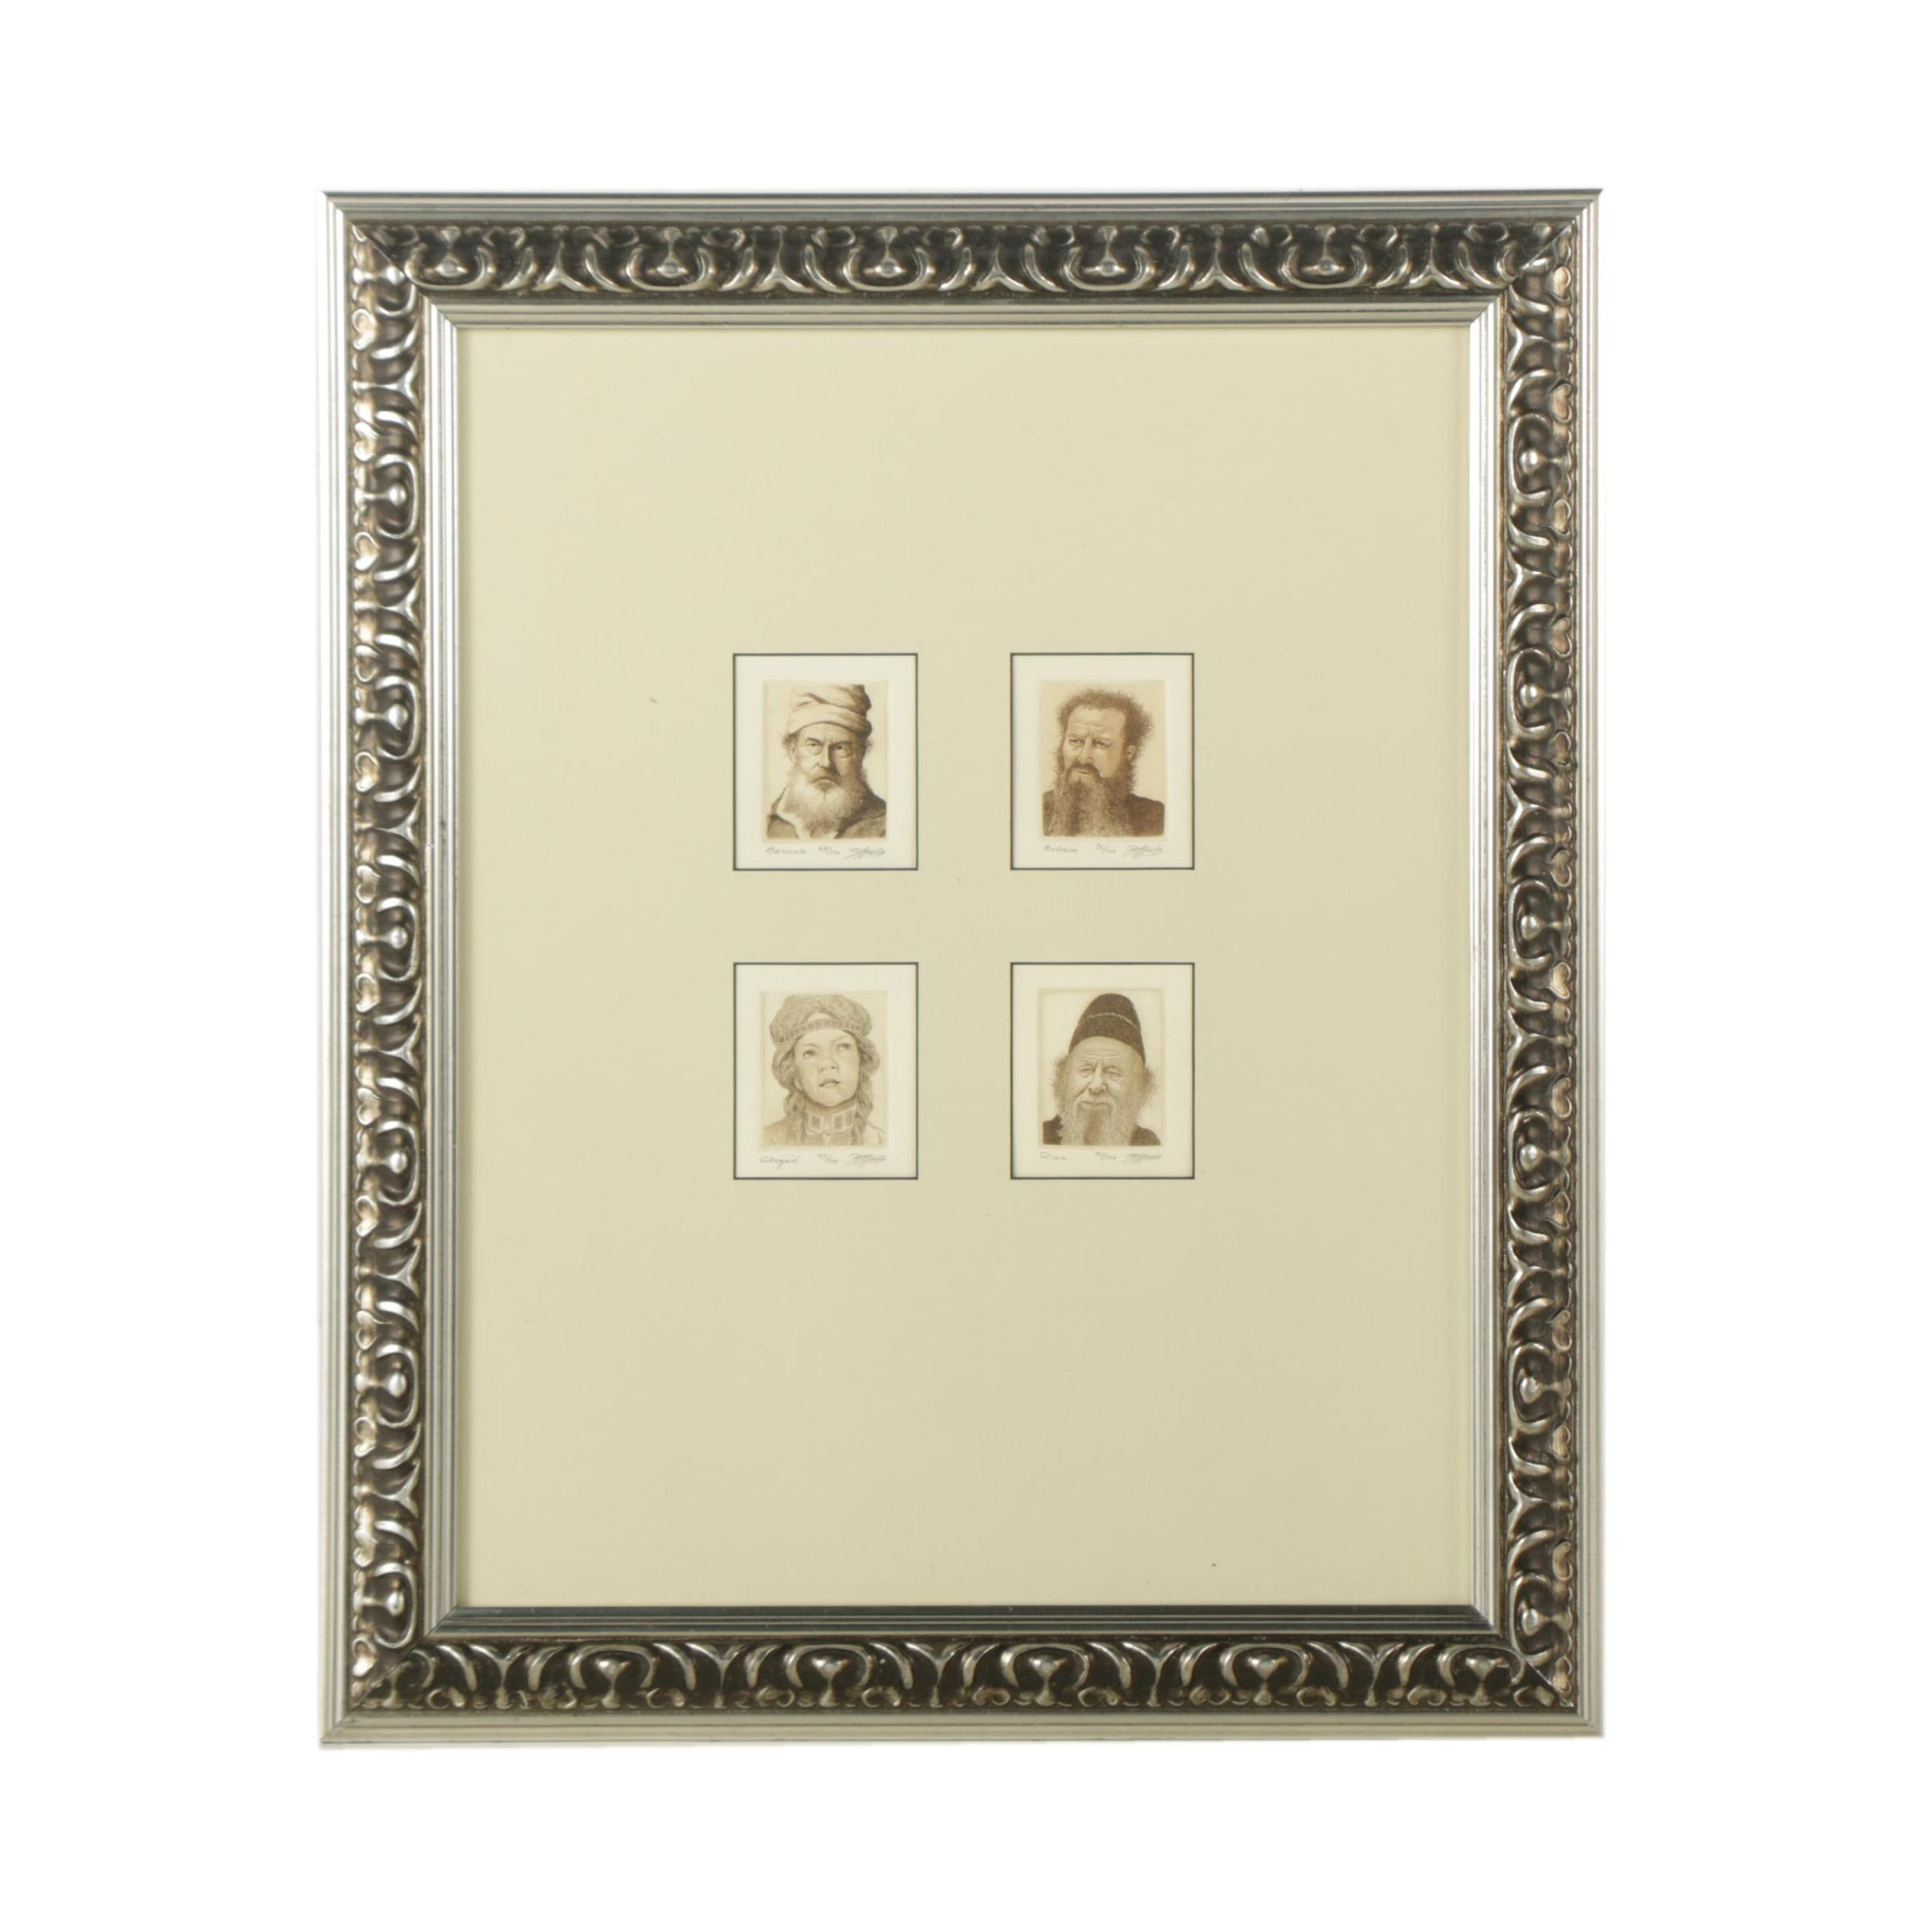 Series of Four Limited Edition Etched Portraits in a Singular Frame